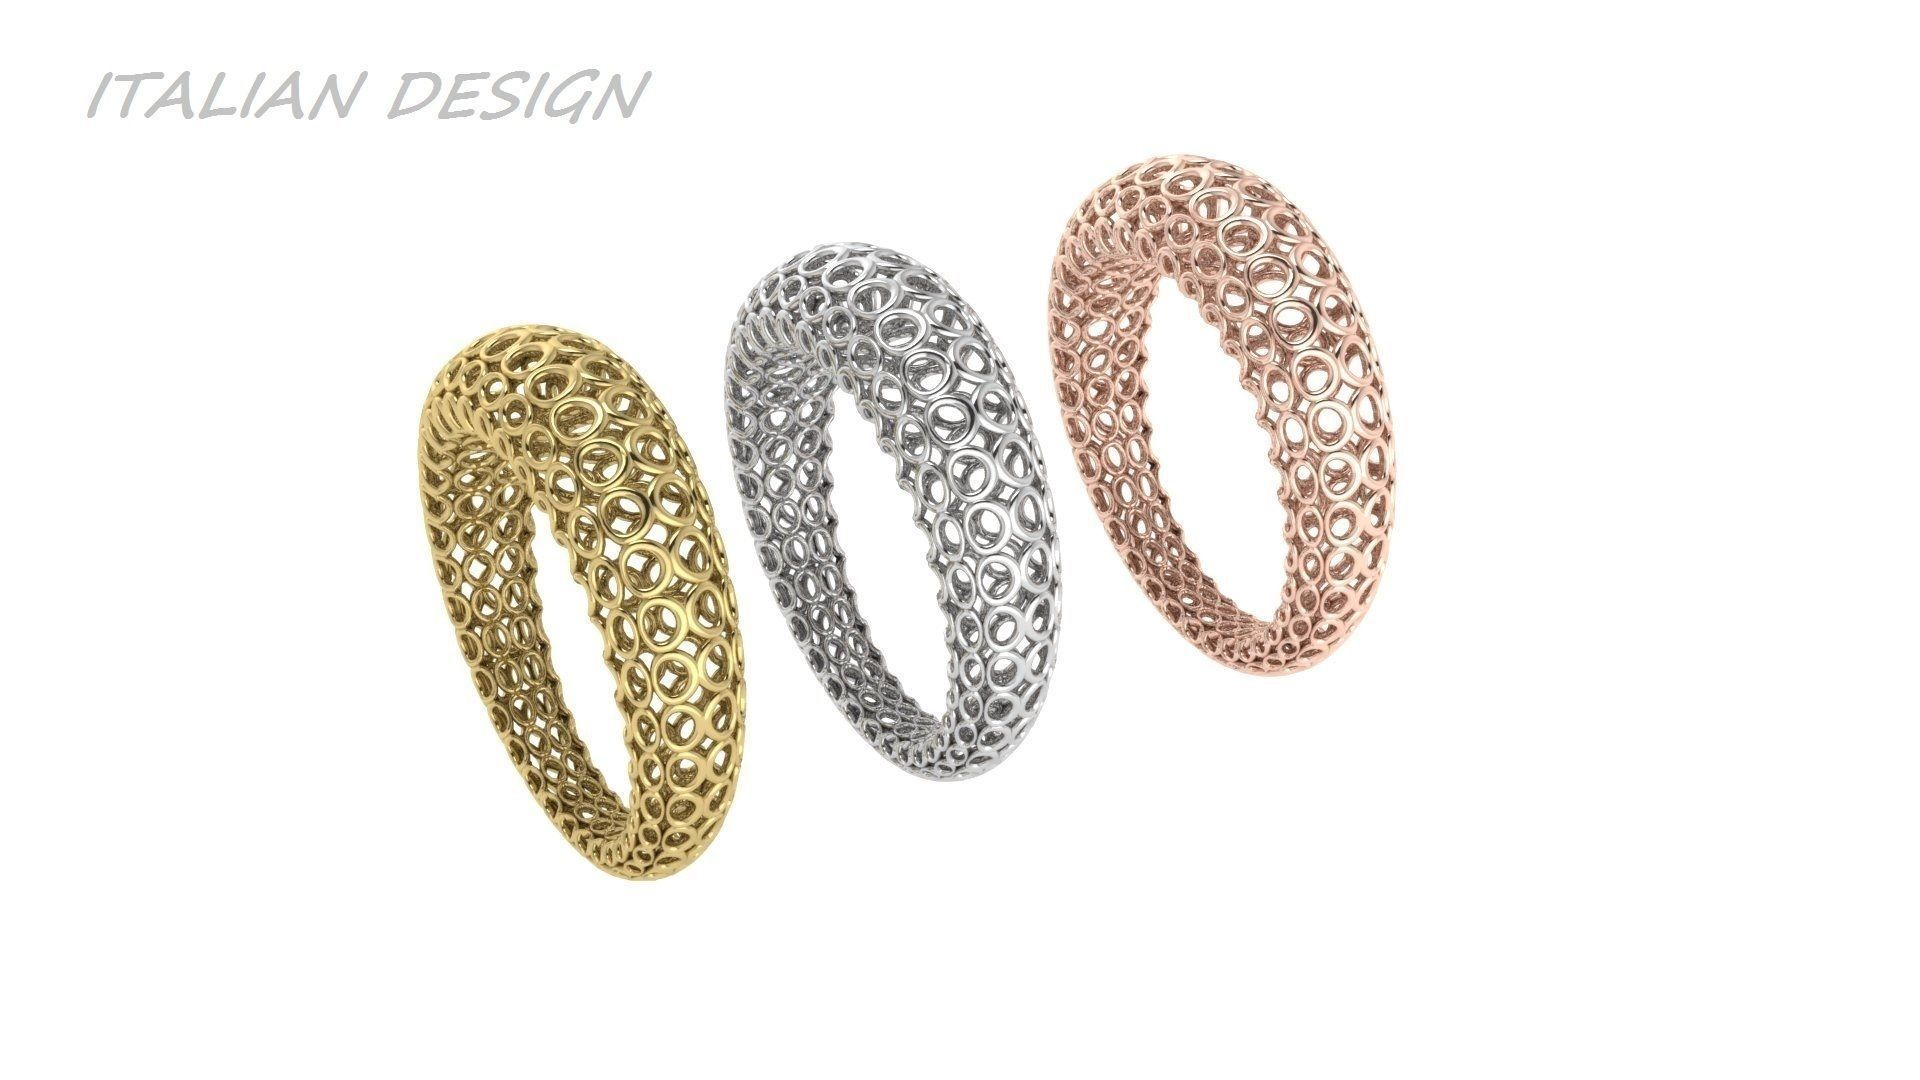 Italy Design Jewelry 3d Print Model Ring Italy Cgtrader